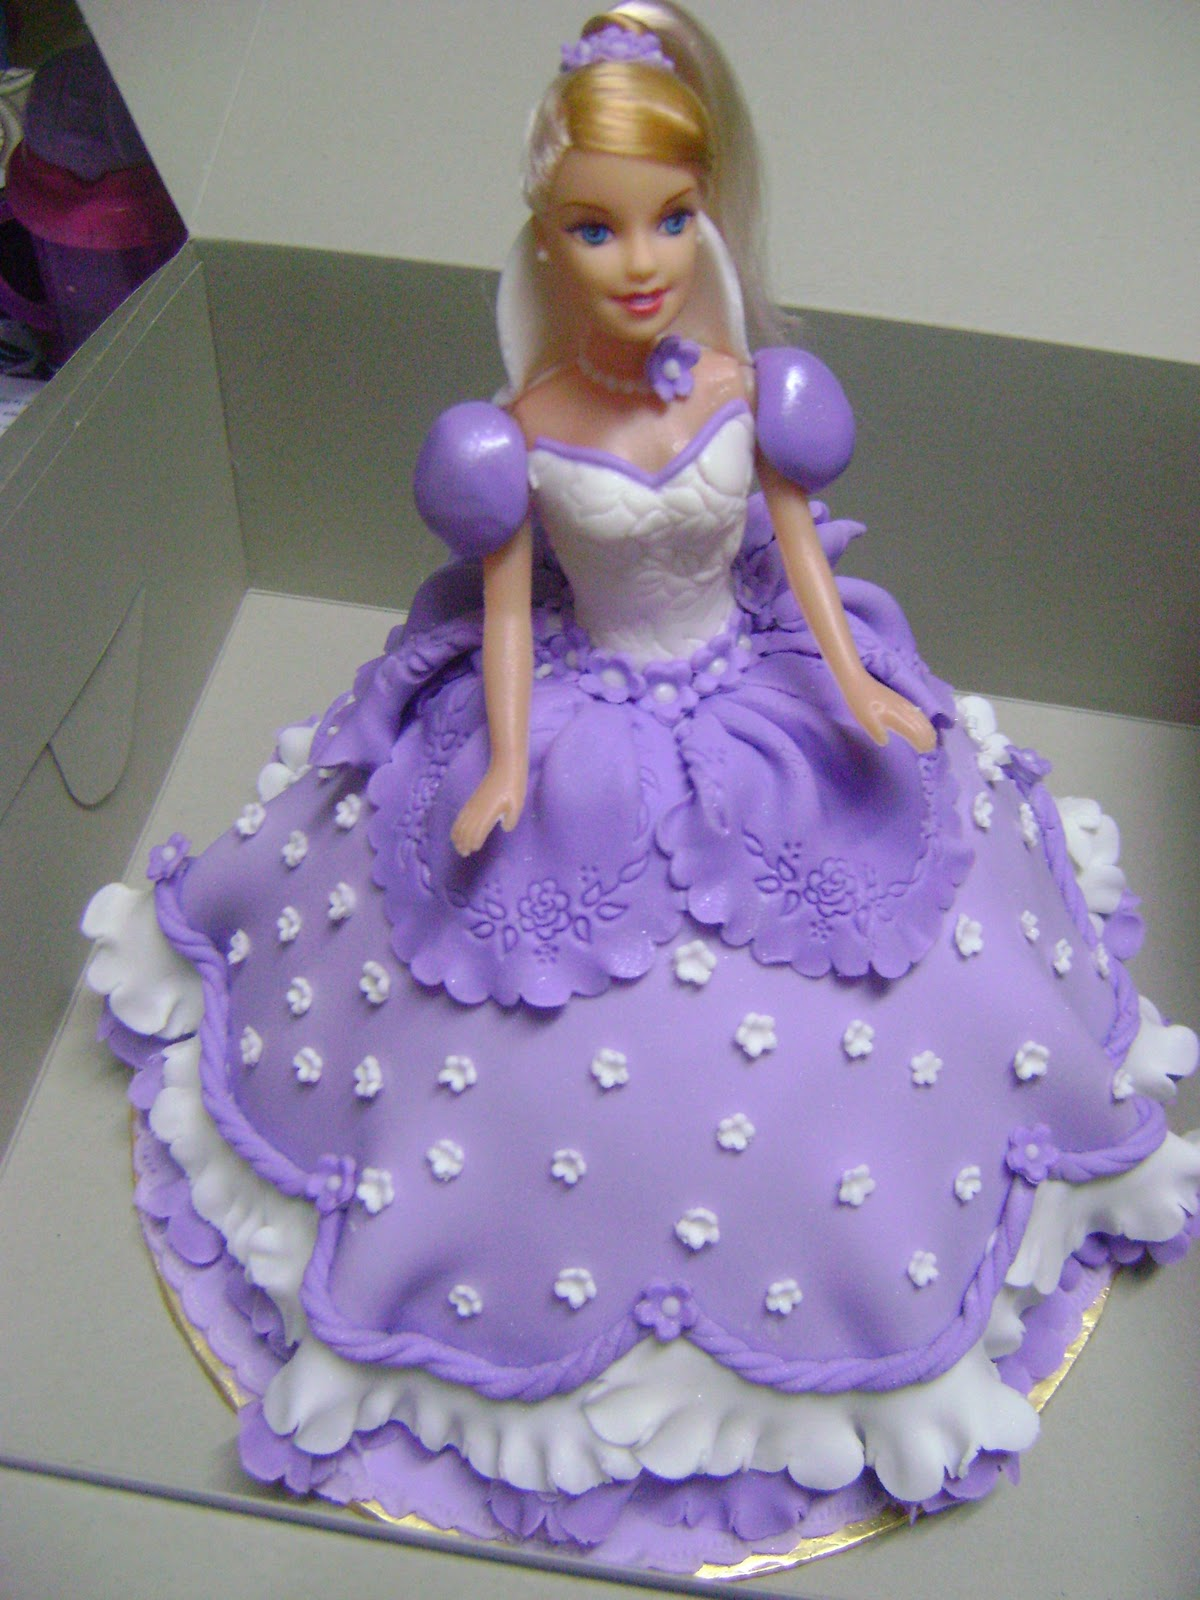 Birthday Cake Images Doll : IreneBakeLove: Princess Doll Cake - Purple Theme